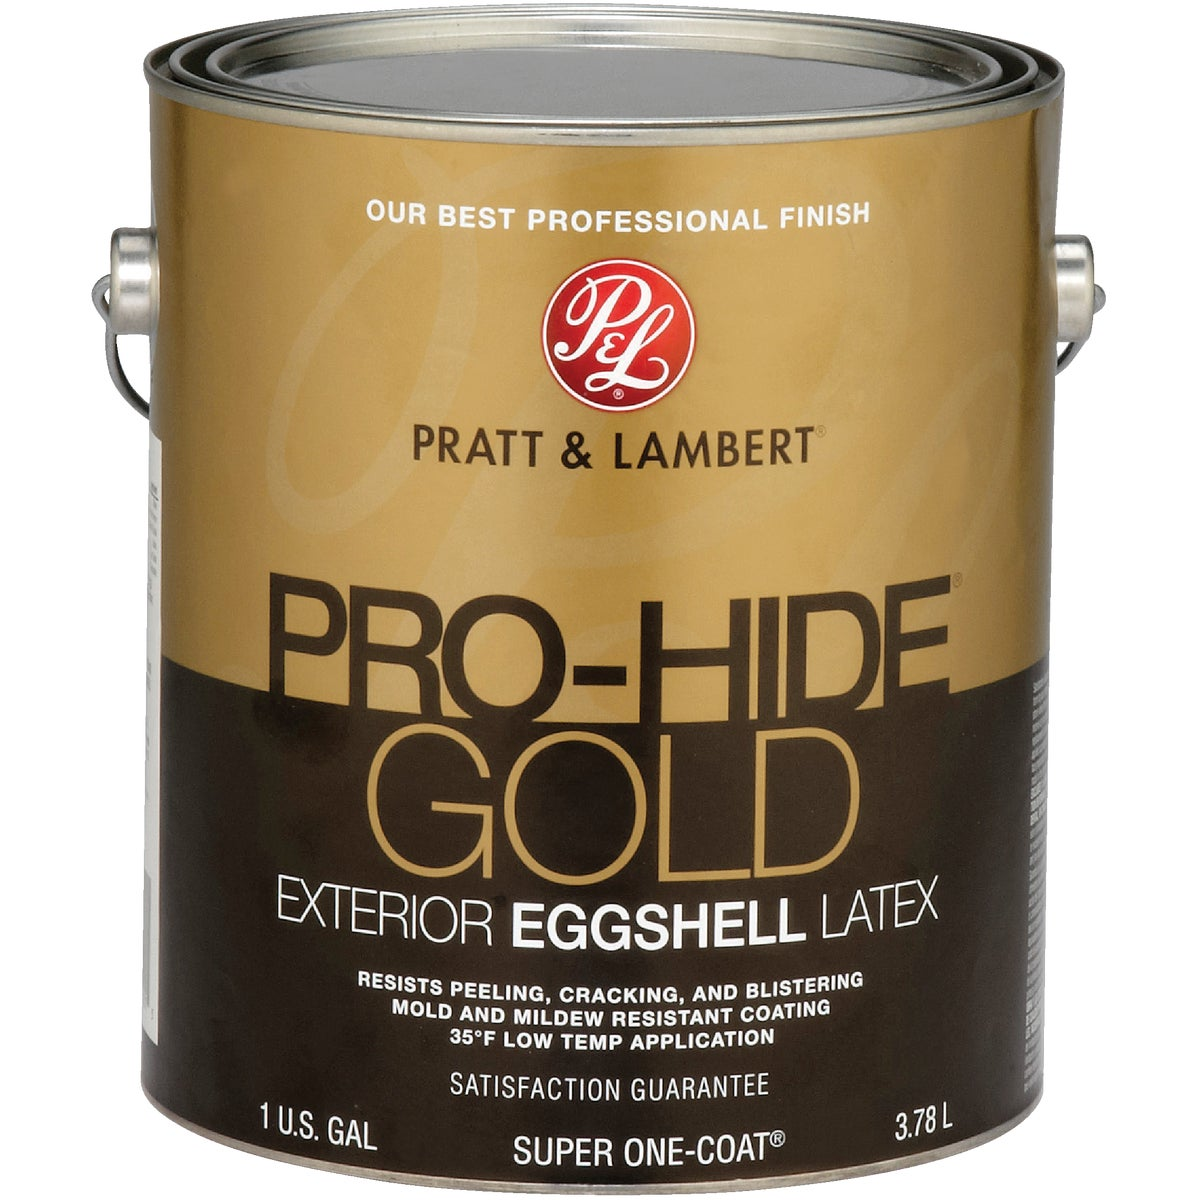 EXT EGG BASE 1 PAINT - 0000Z8591-16 by Do it Best